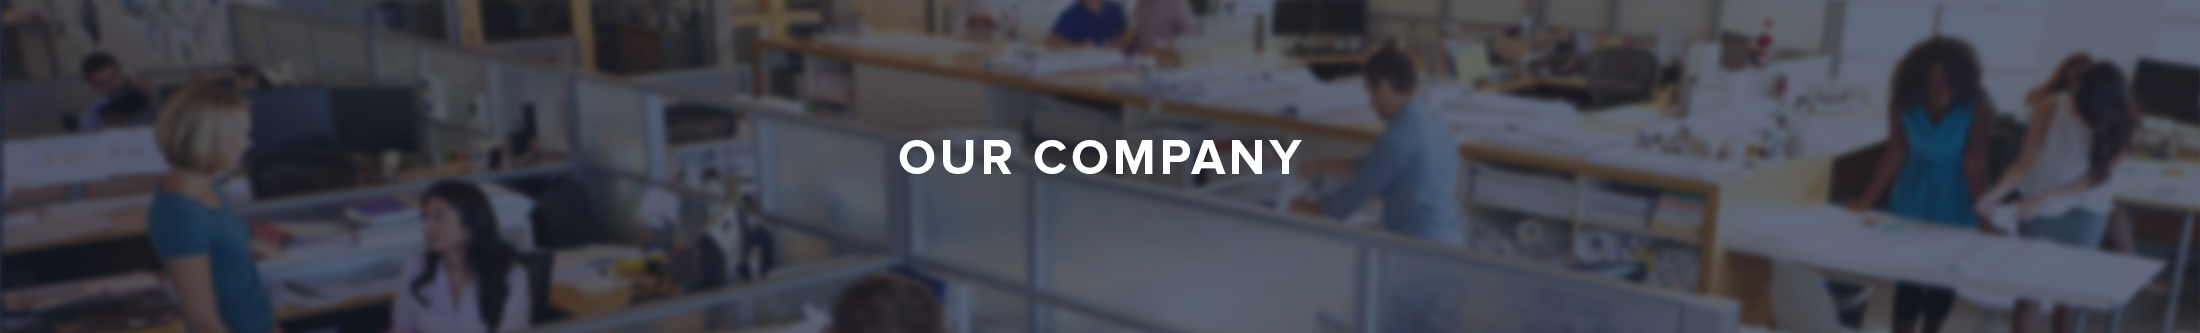 our_company_banner